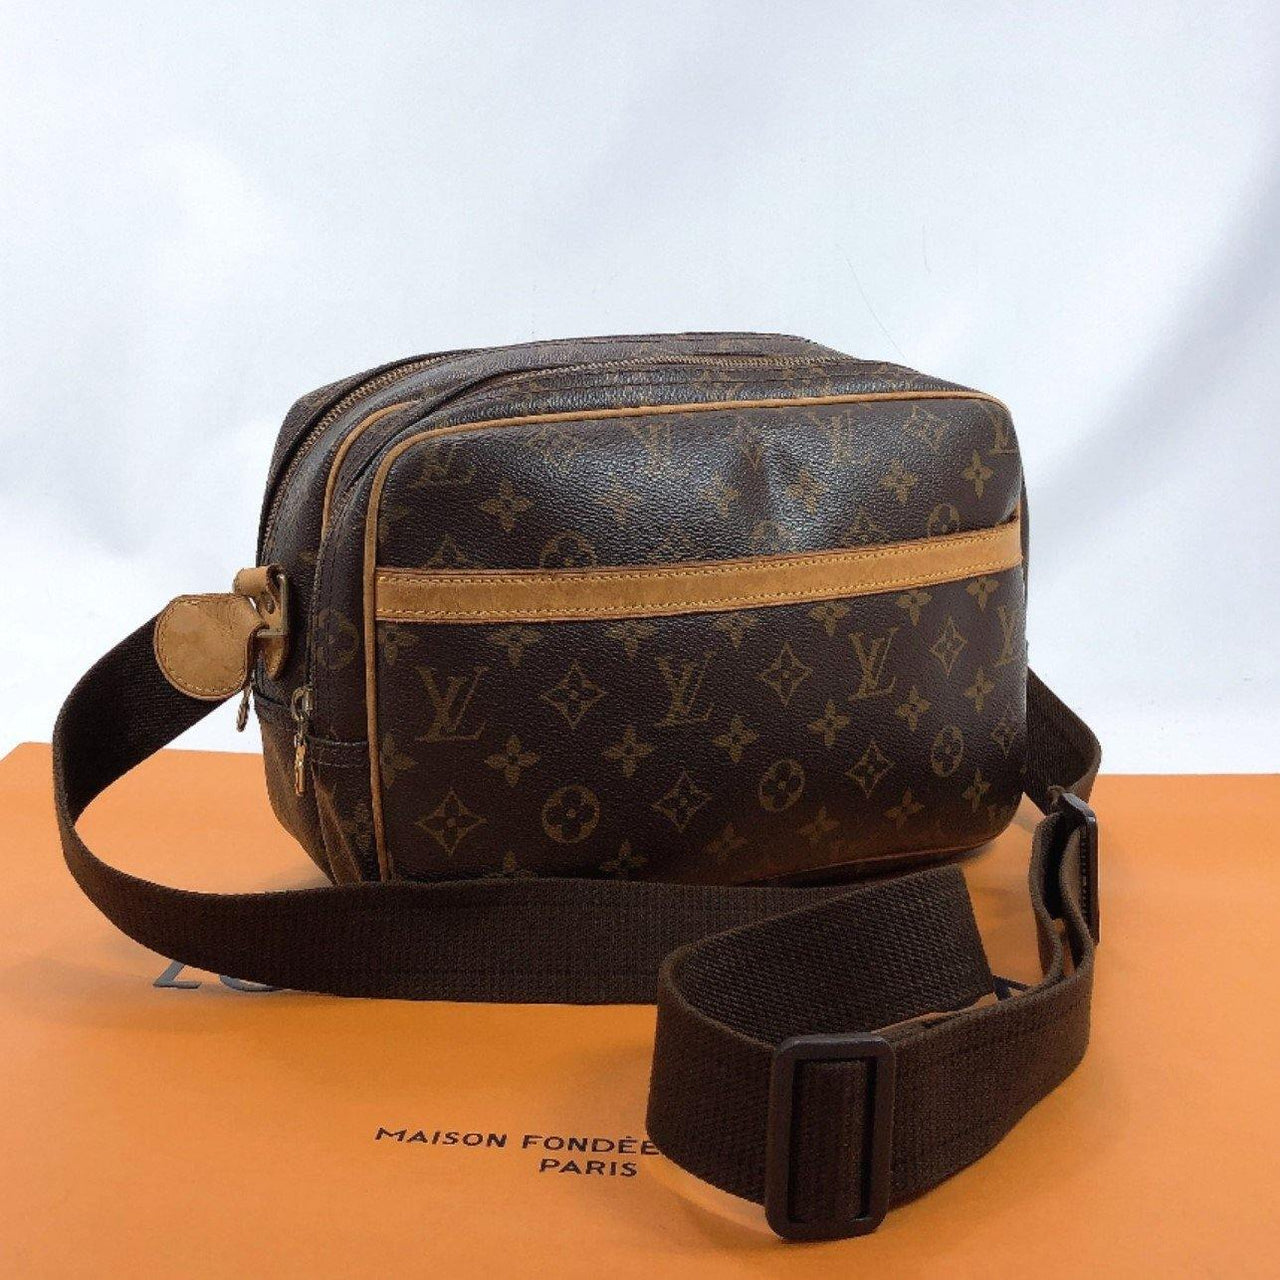 LOUIS VUITTON Shoulder Bag M45254 Reporter PM Monogram canvas/Leather Brown unisex Used